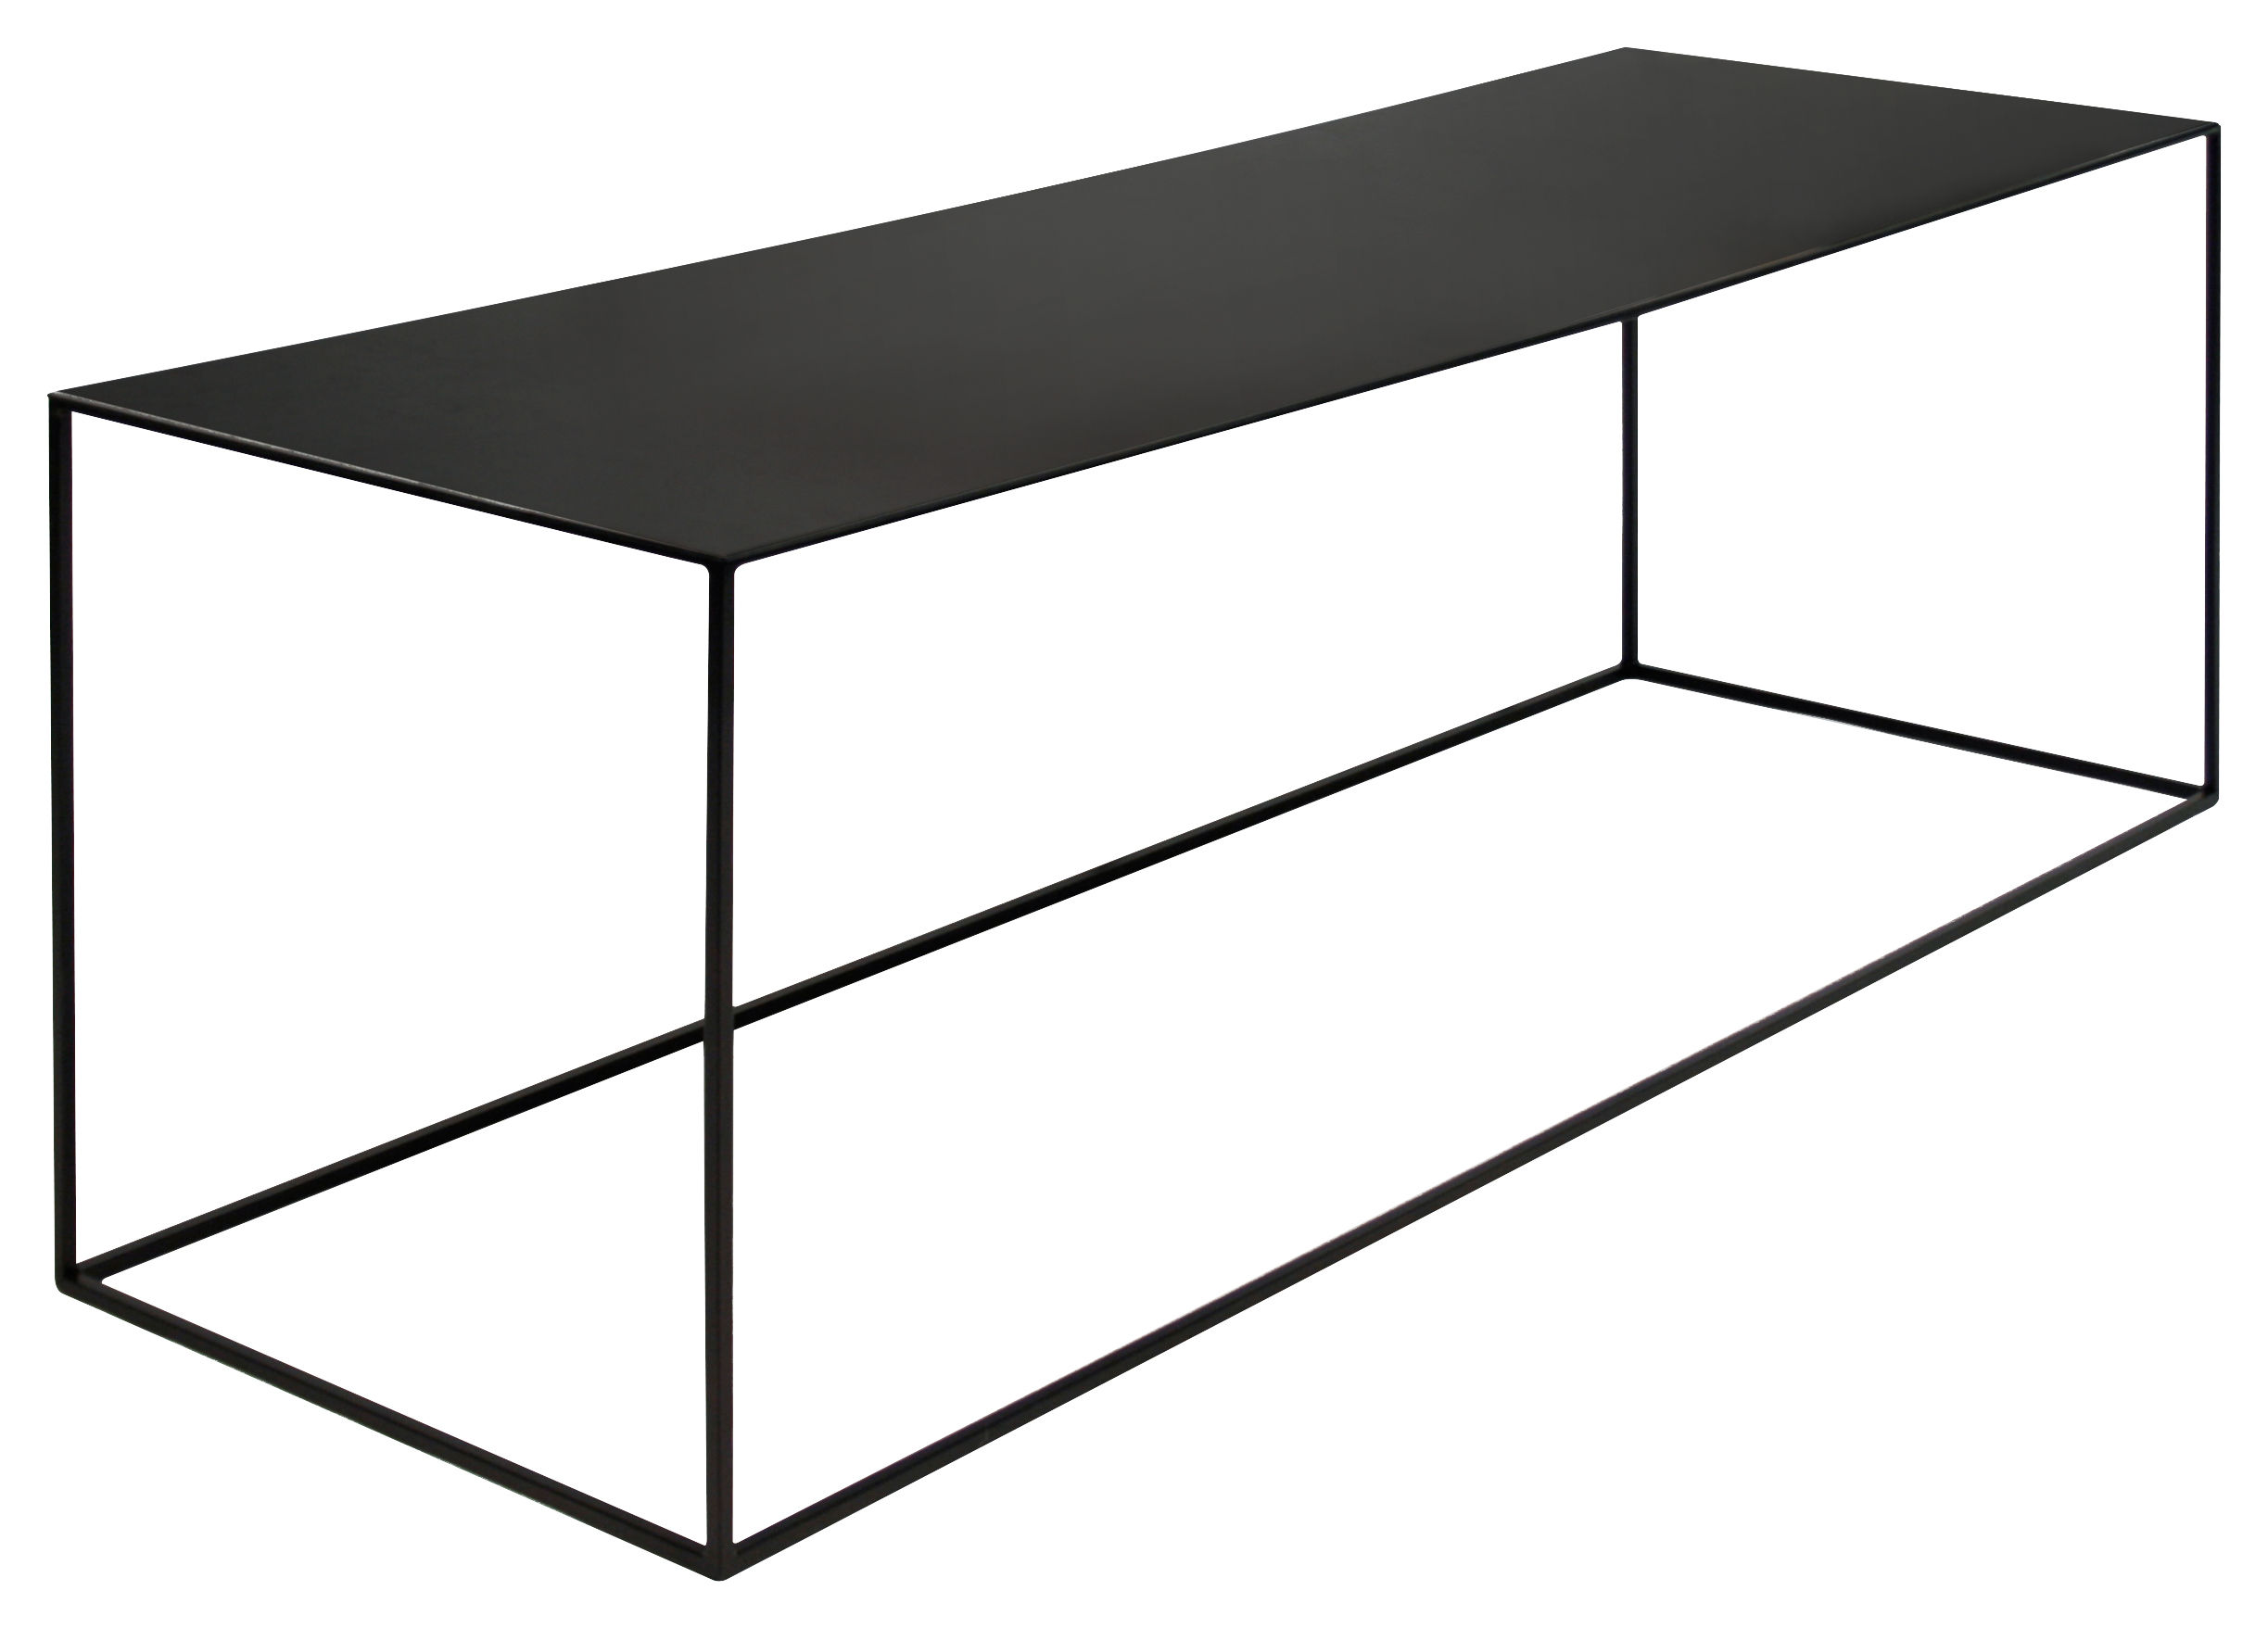 table basse slim irony zeus m tal noir cuivr pied noir cuivr h 46 made in design. Black Bedroom Furniture Sets. Home Design Ideas